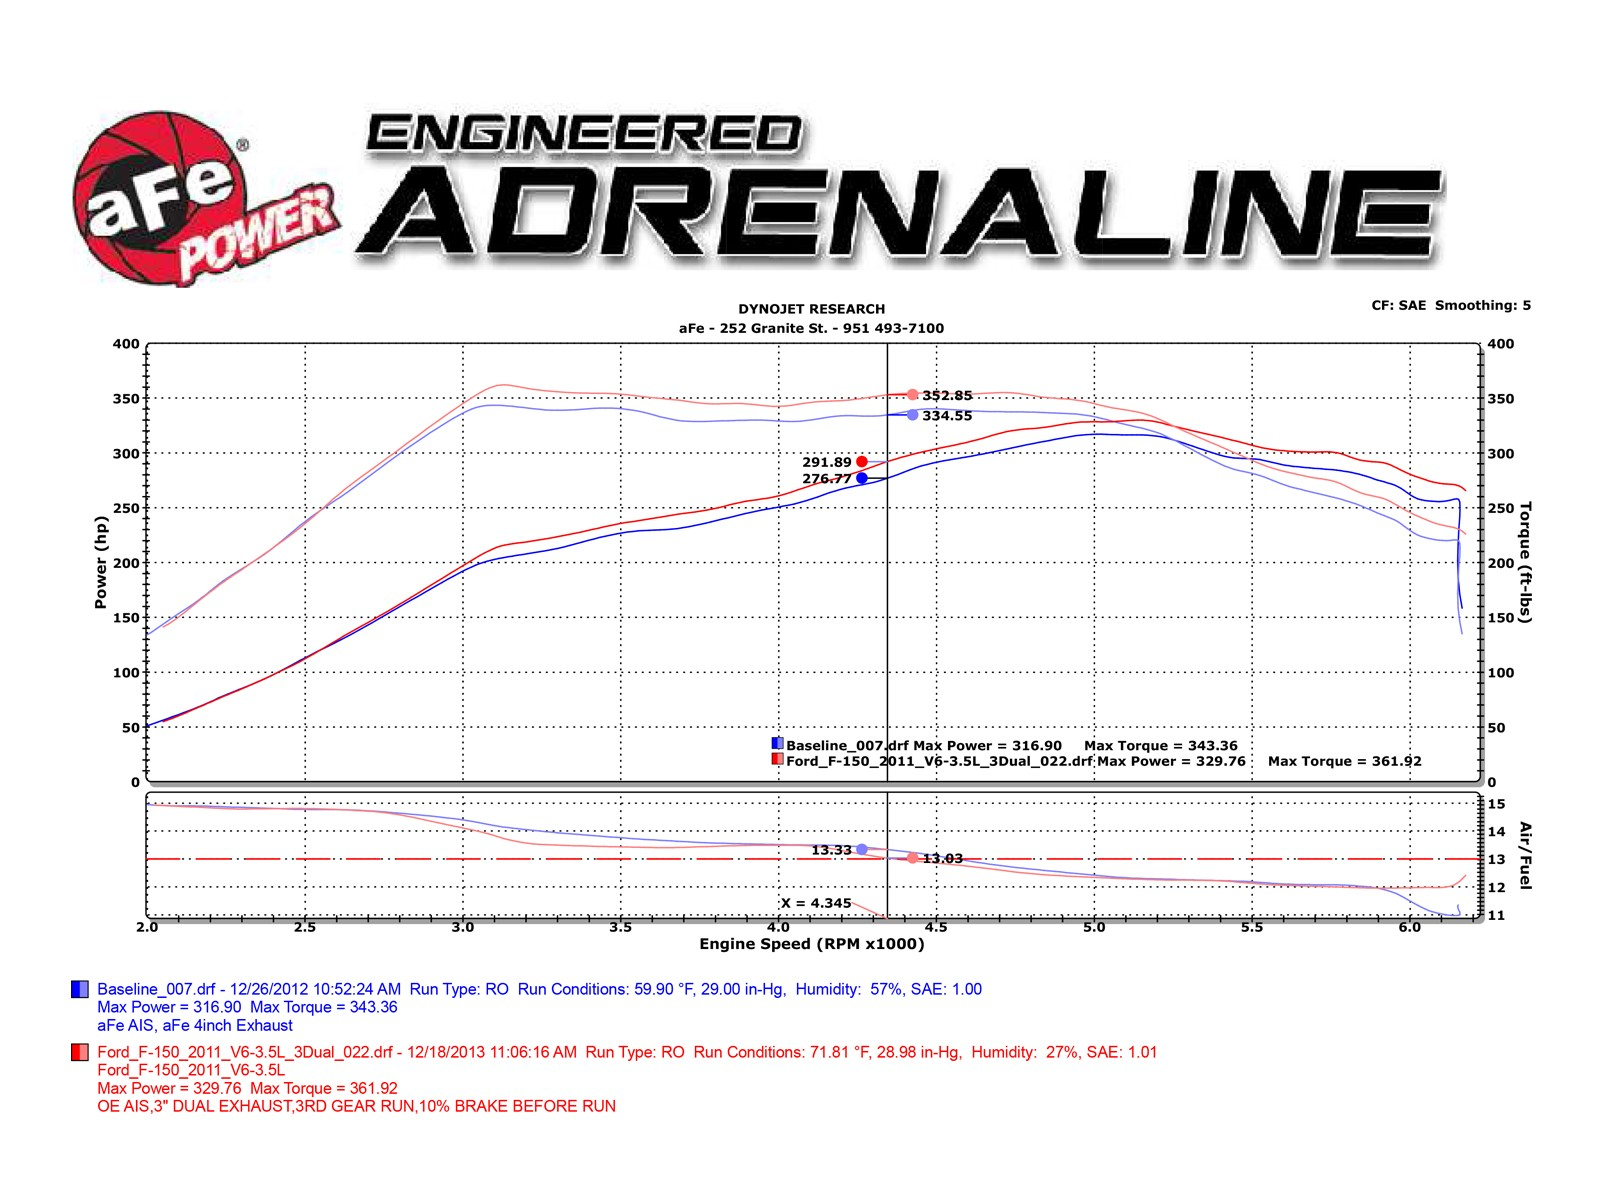 Mach Force Xp 3 409 Stainless Steel Cat Back Exhaust System Afe Power 95 Ford F 150 4 9 Engine Diagram Adds Up To 15 Hp Horsepower 18 Lbs X Ft Torque Max Gains